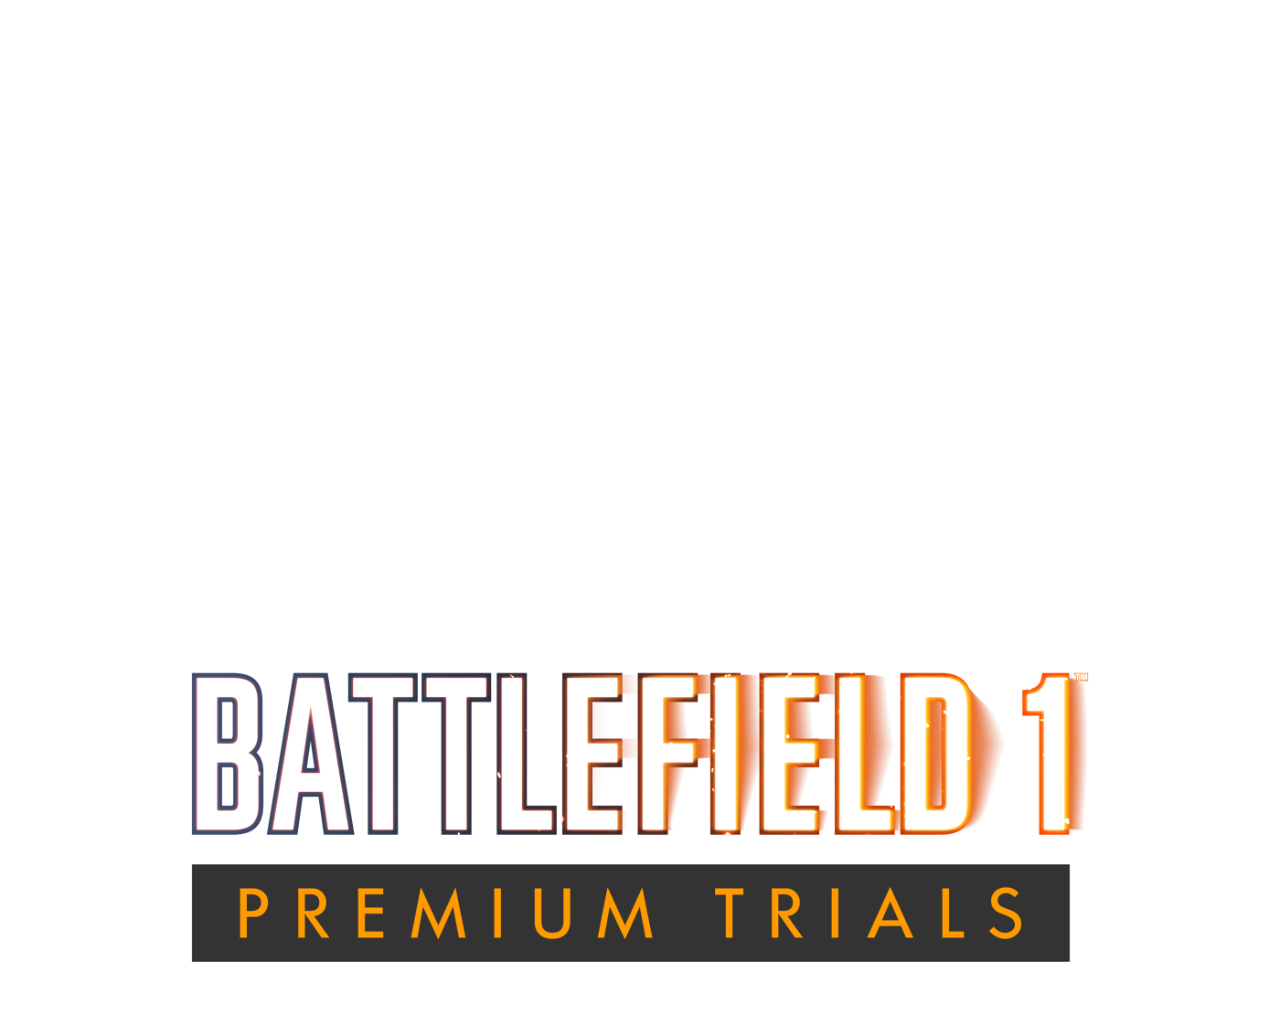 Battlefield 1 logo png. Premium pass official site